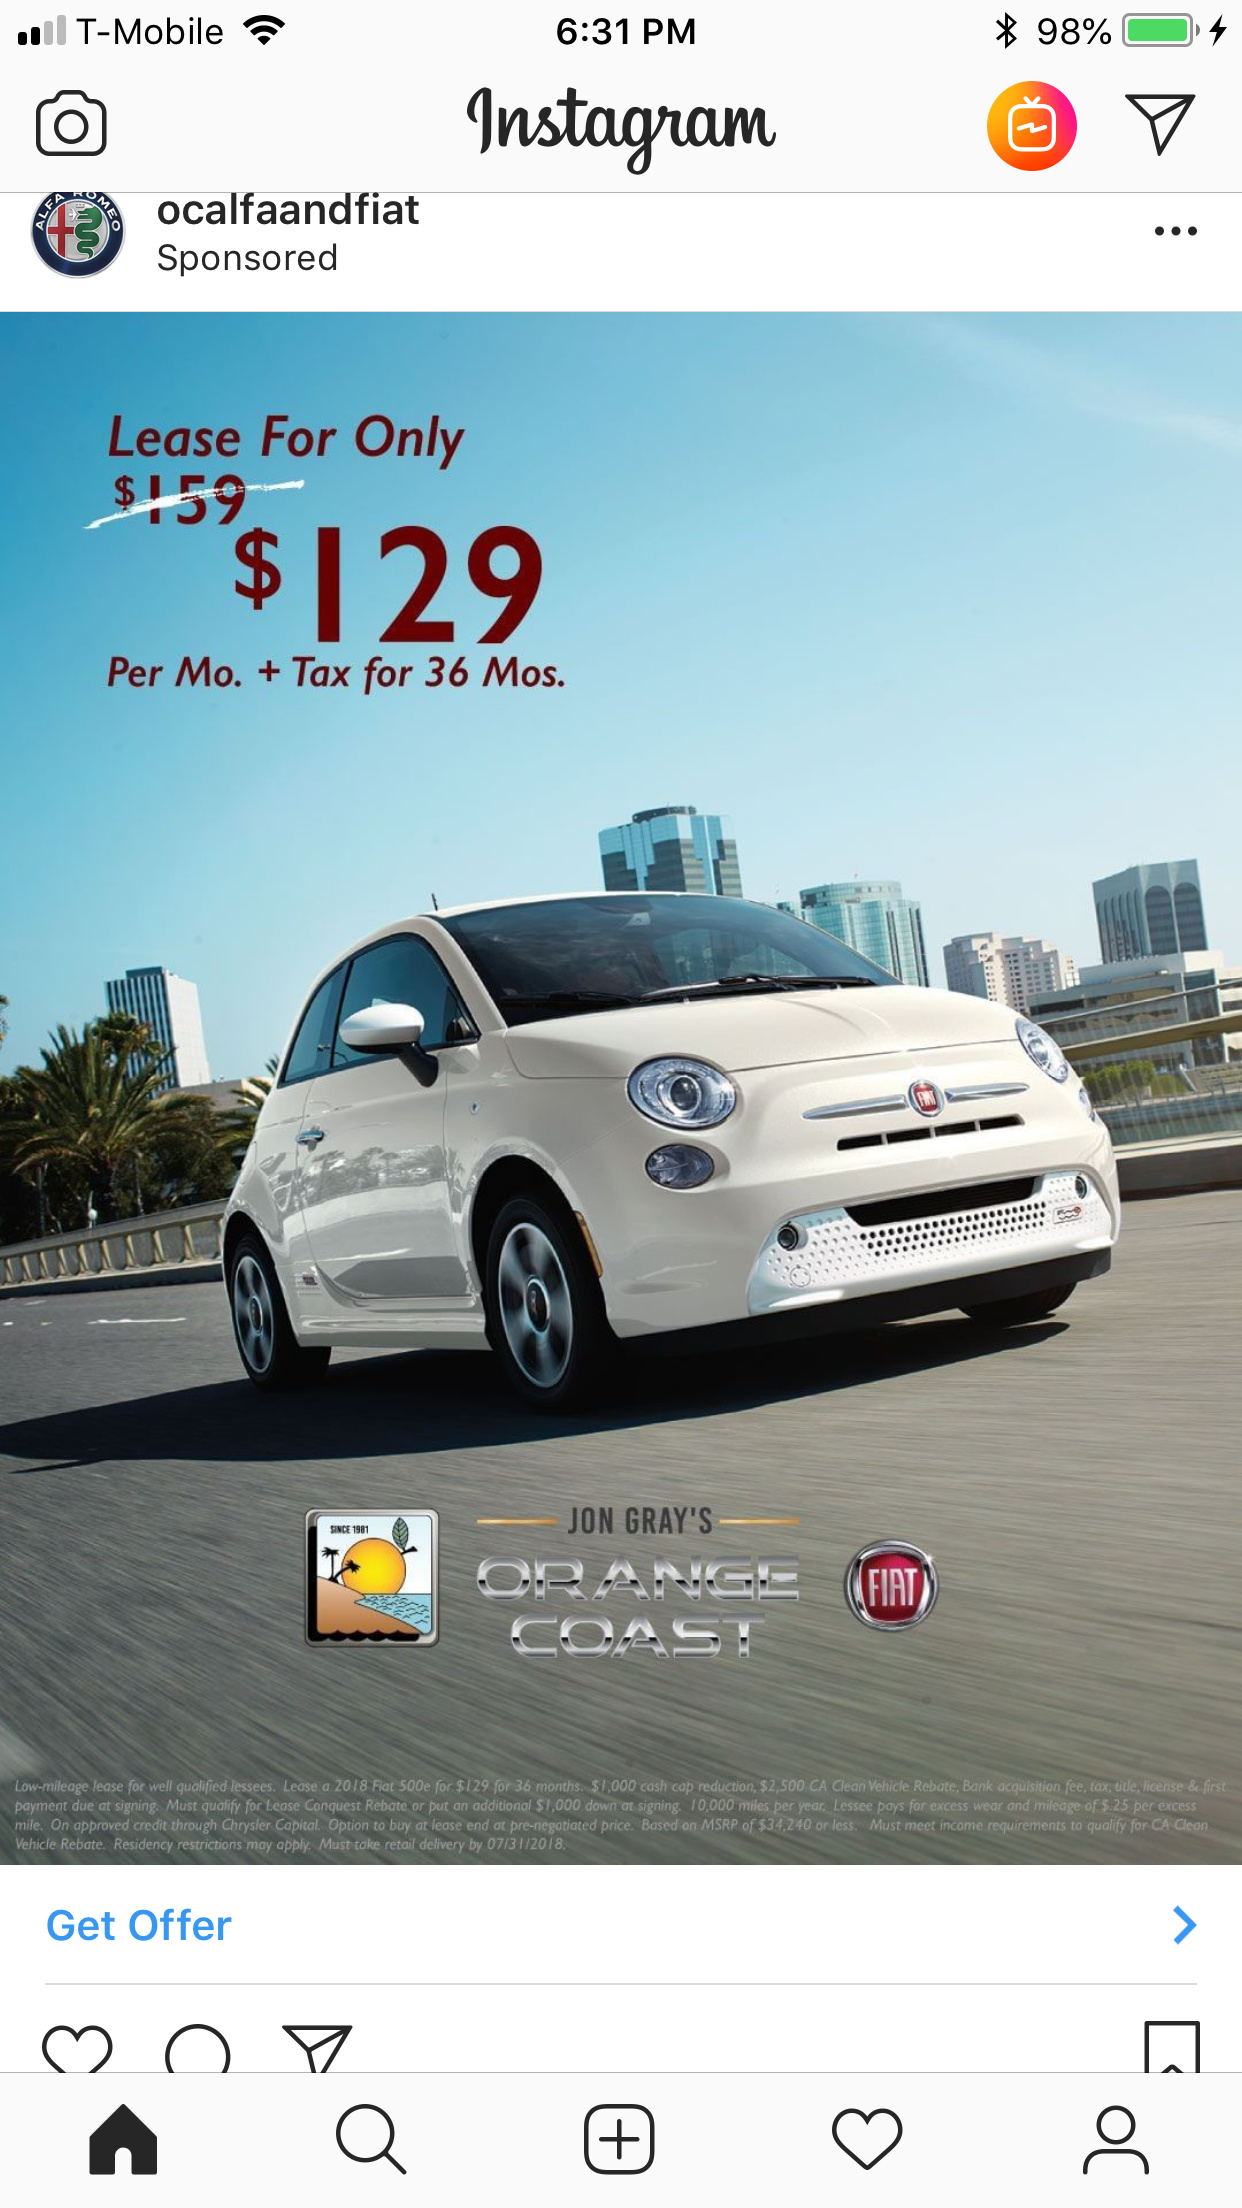 2018 fiat 500e are finally available - ask the hackrs - leasehackr forum